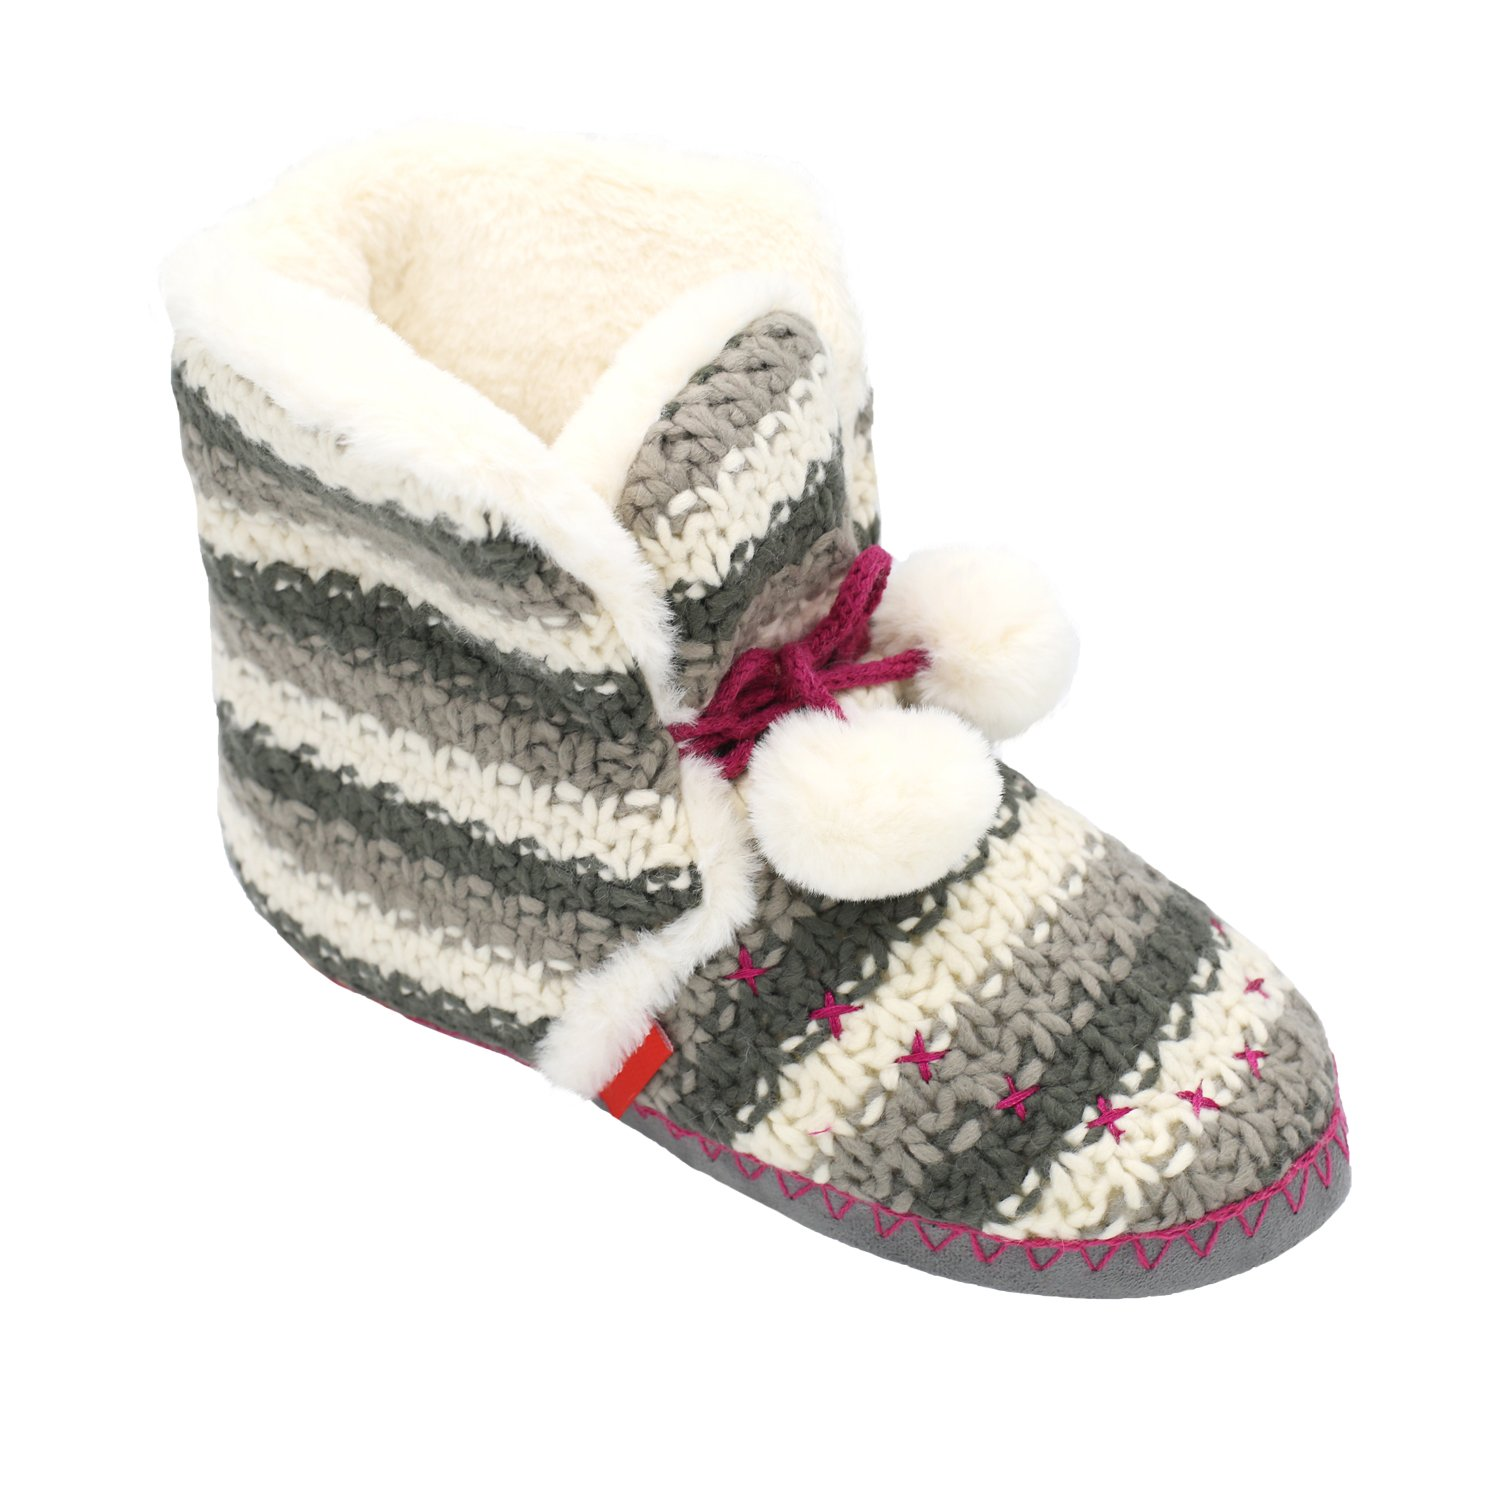 Q-Plus Warm Knit Kids Fuzzy Comfy Memory Foam House Slippers Bootie With Soft Sole,Gray,Little Kid US 1.5 -2.5